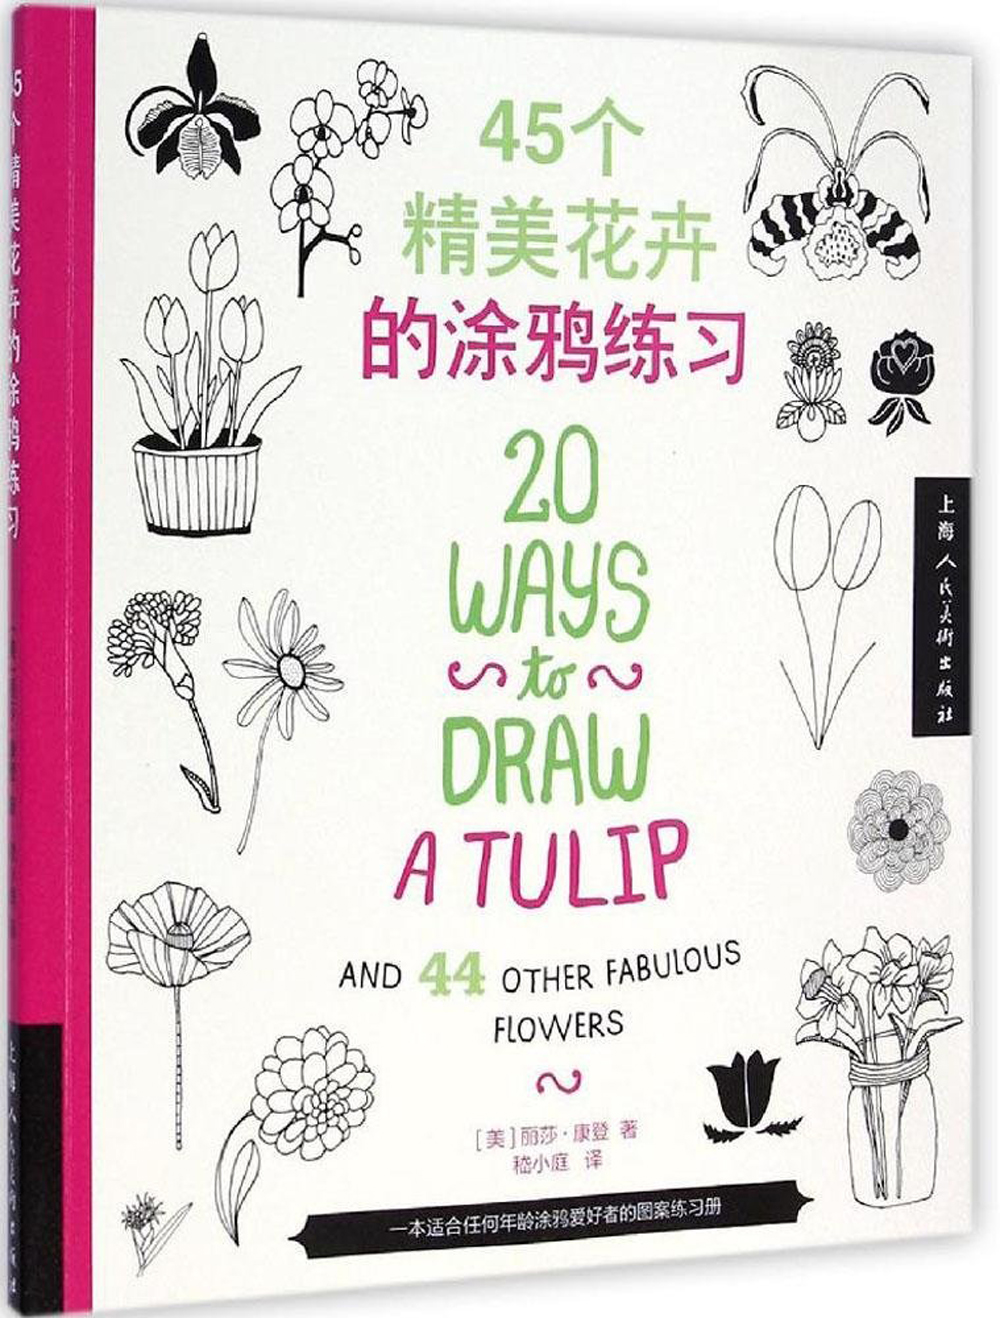 20 Ways to Draw a Tulip:and 44 Other Fabulous Flowers / Chinese coloring book for children adult